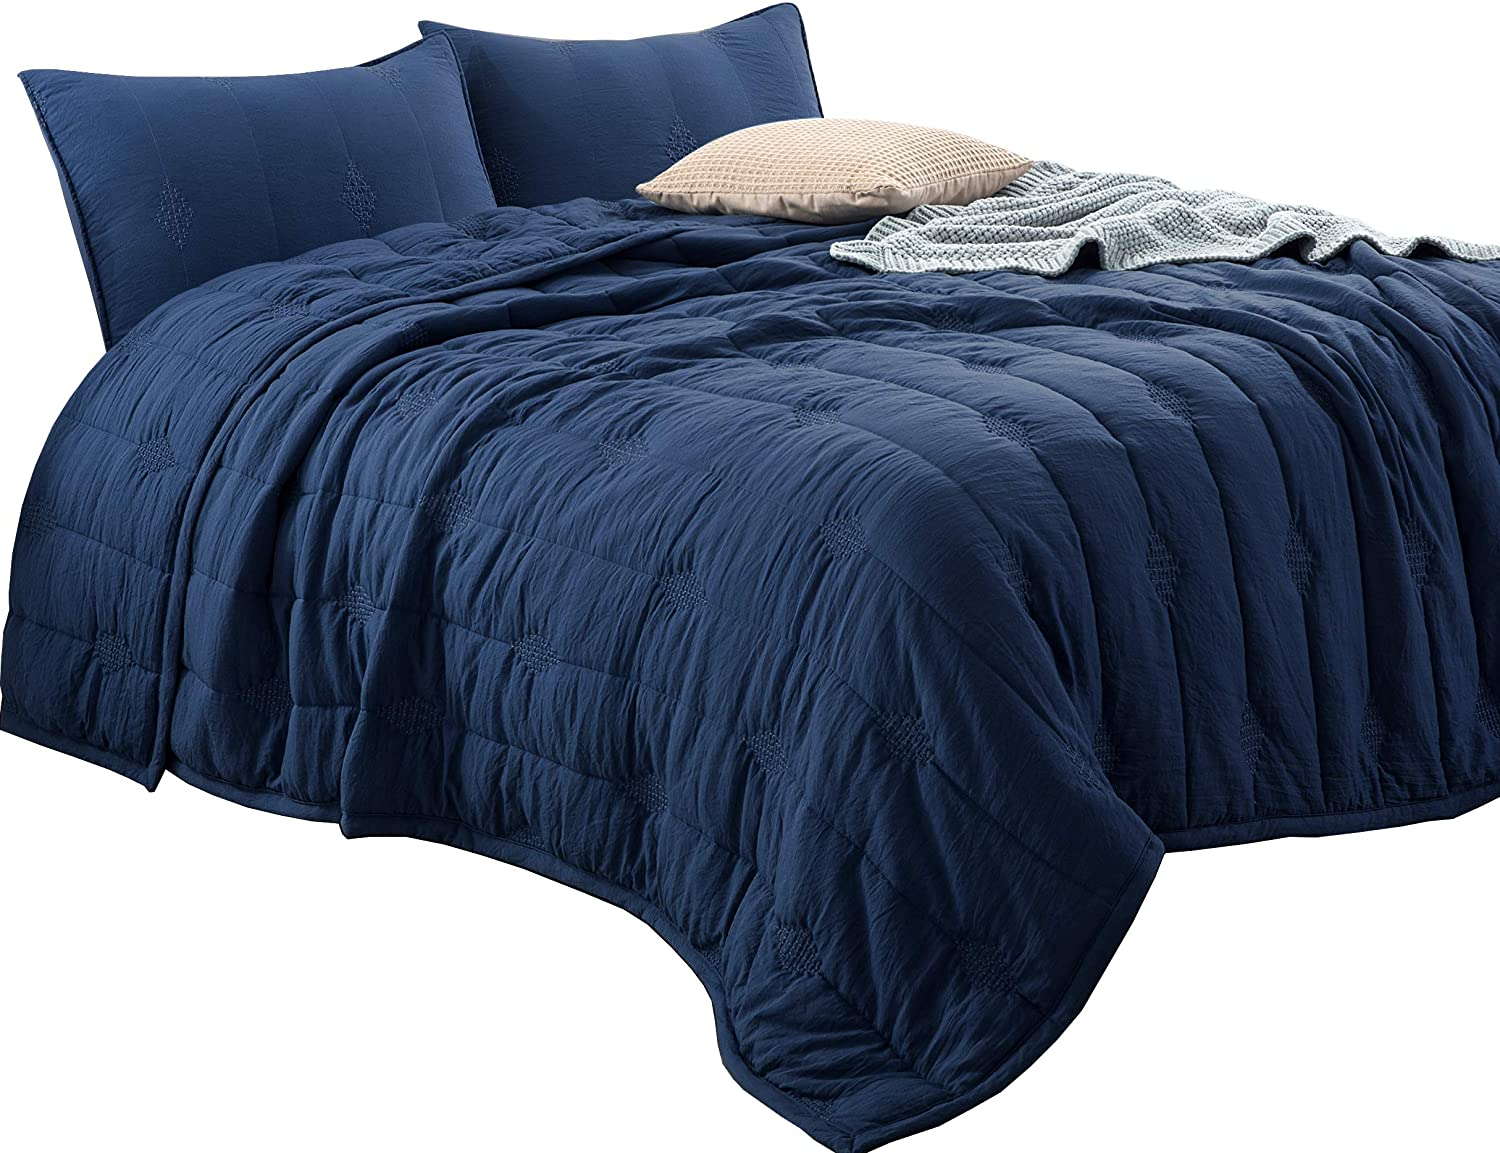 ANNA.Z HOME Ethan Comforter, Quilt, Stone Washed Microfiber 3 Pieced Set Quilt, Allover Stitching and Embroidery, King and Queen Set in Solid Colors, Good for All Seasons. (Navy, King Set)